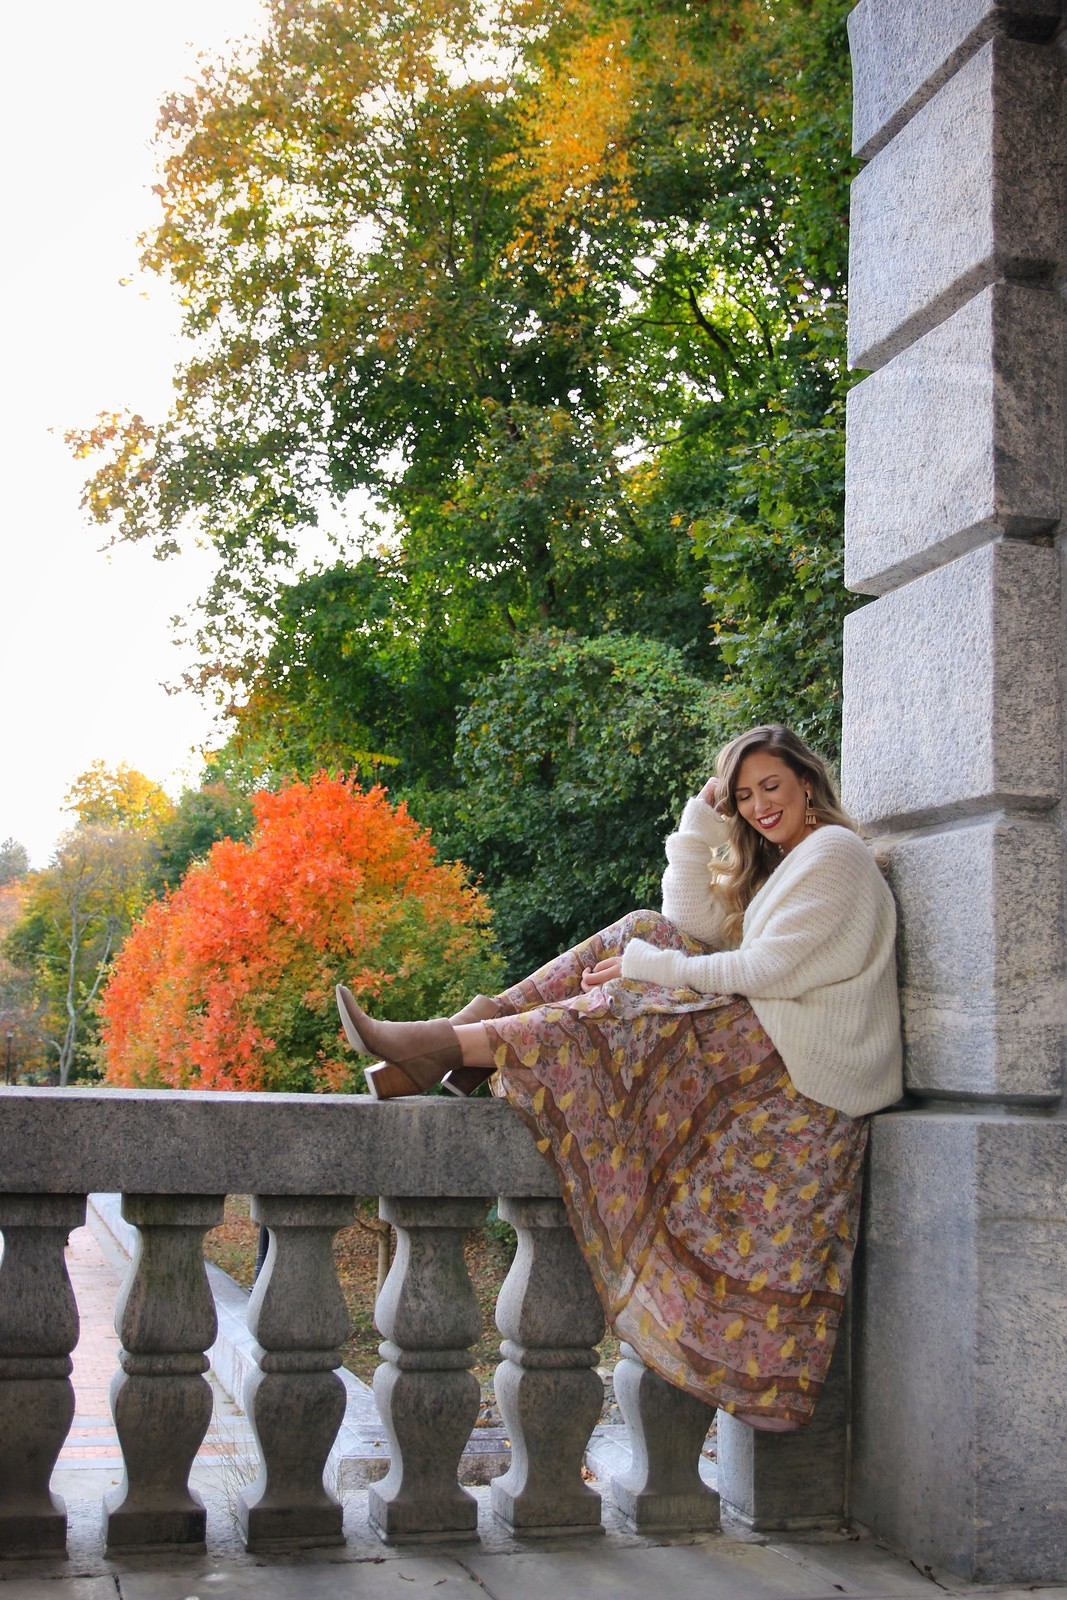 Kensico Dam Westchester Valhalla New York Fall Photo Shoot Inspiration